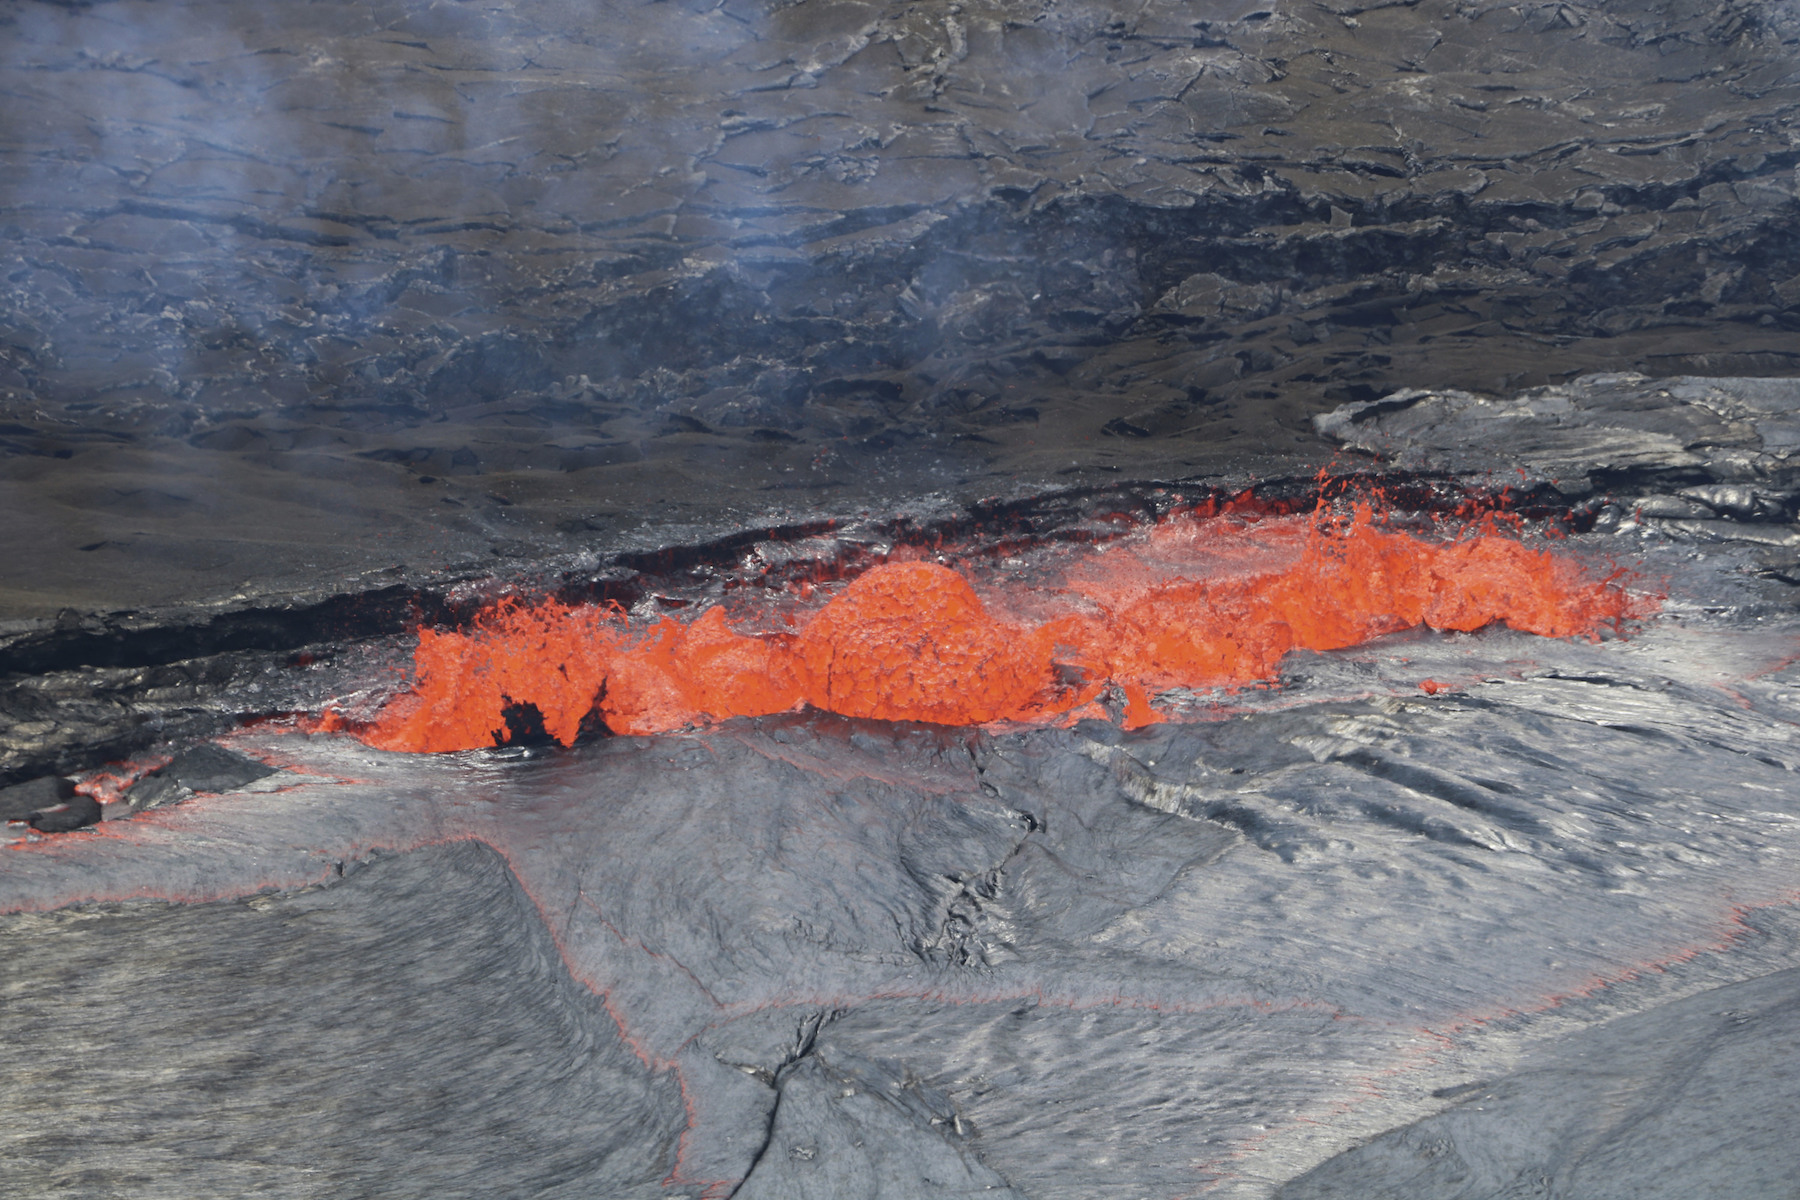 <div class='meta'><div class='origin-logo' data-origin='AP'></div><span class='caption-text' data-credit='USGS/AP'>In this April 22, 2018, photo provided by the U.S. Geological Survey, lava spatters at the edge of Kilauea's Halemaumau Crater in Hawaii Volcanoes National Park.</span></div>